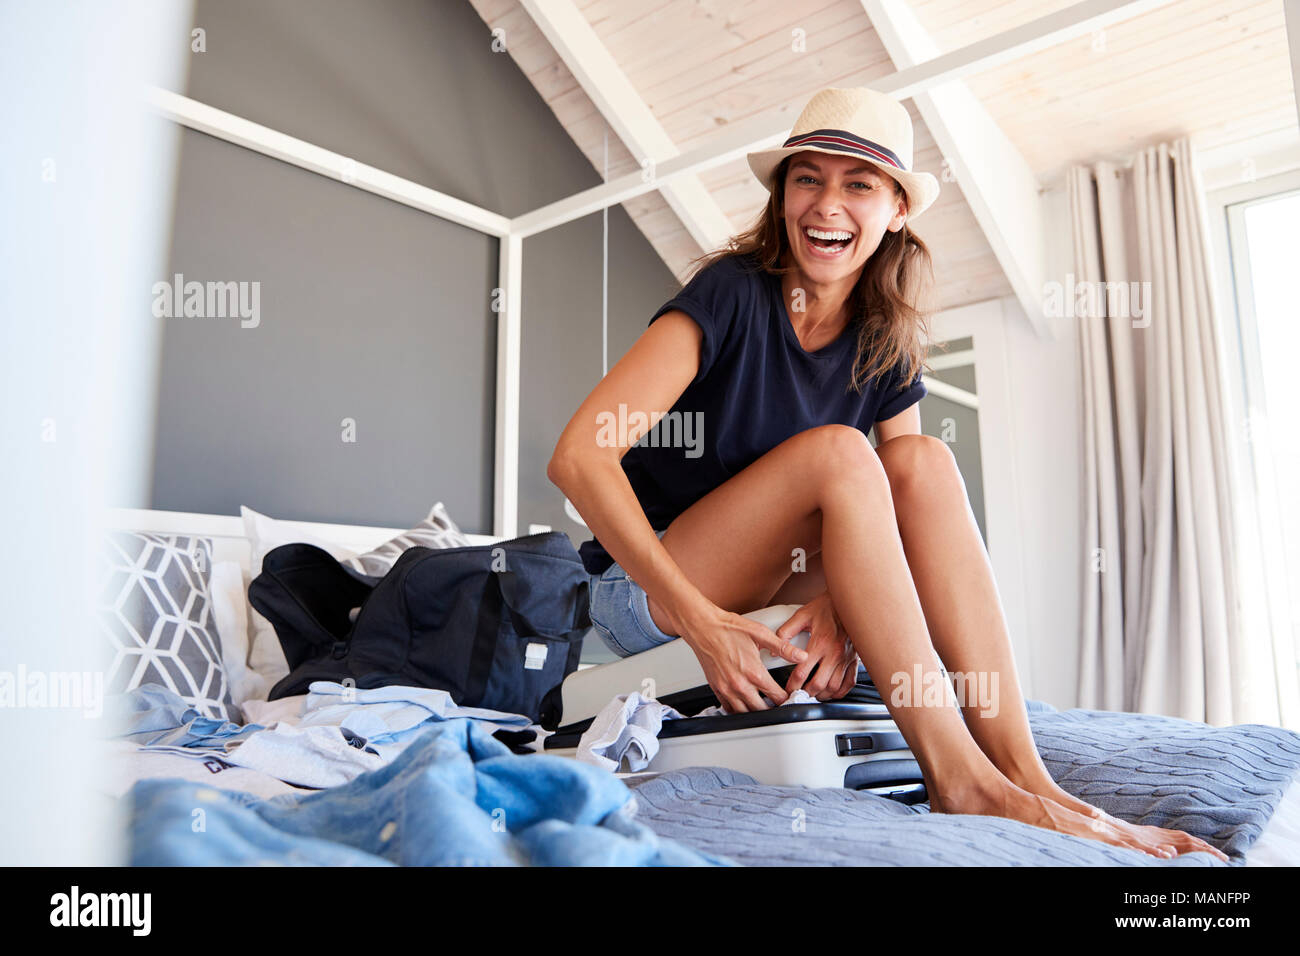 Portrait Of Woman Trying To Close Full Holiday Suitcase - Stock Image